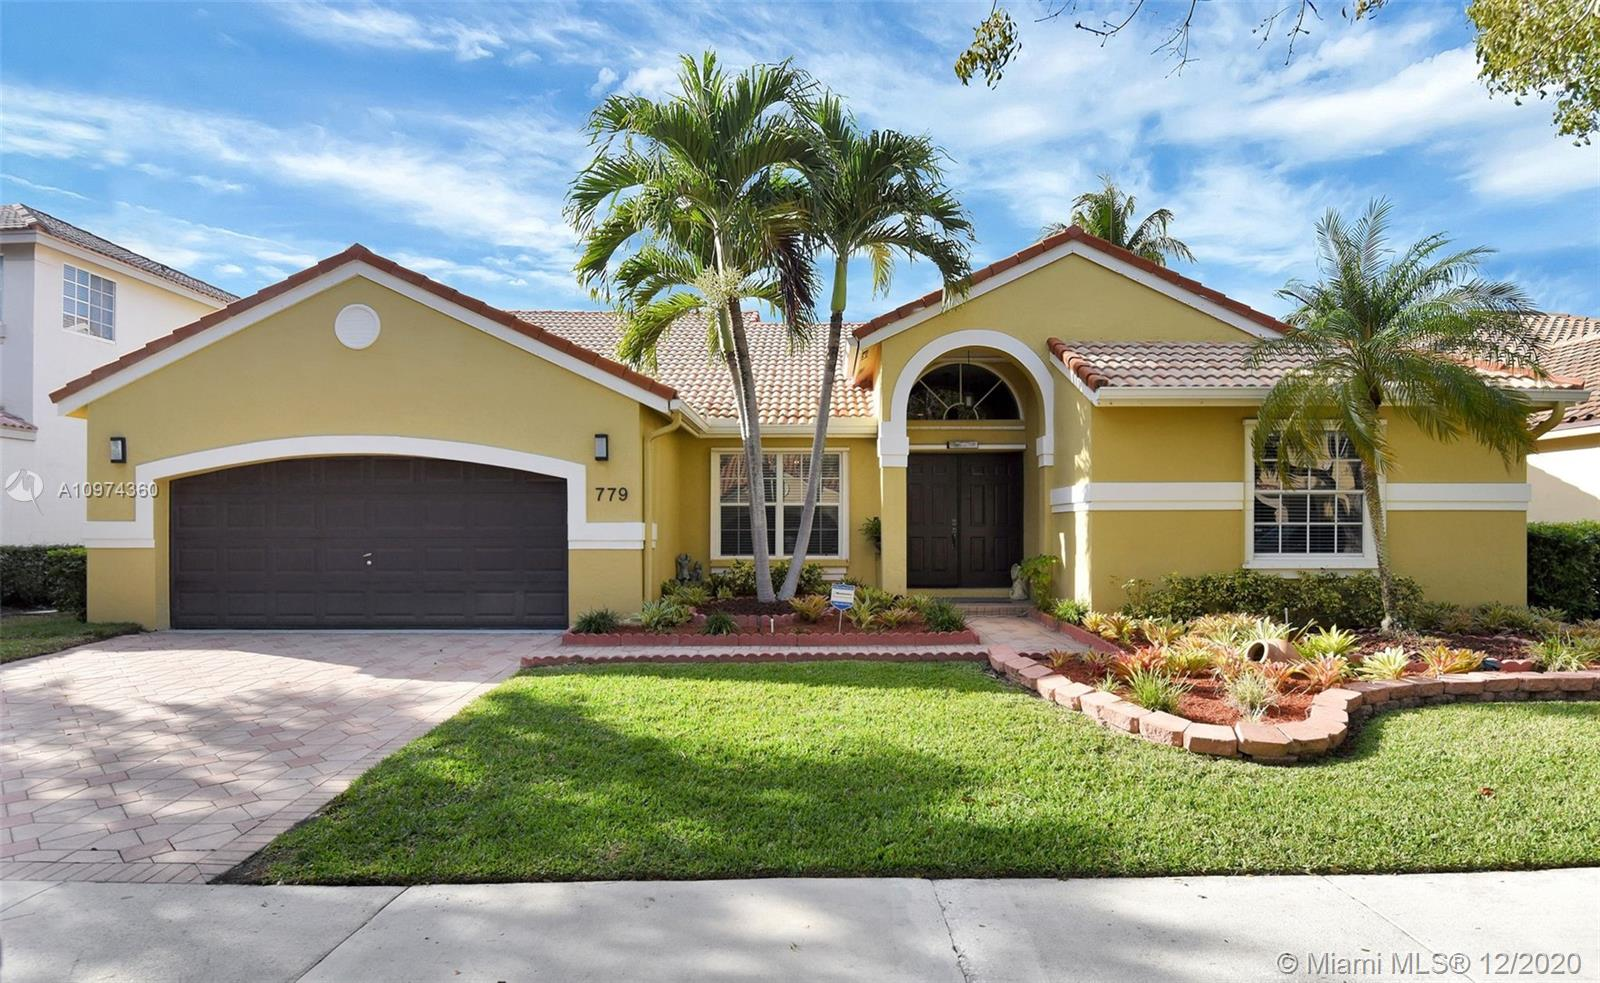 BEAUTIFUL POOL HOME IN THE AMAZING COMMUNITY OF THE LAKES IN WESTON. 5 BEDROOMS, 2 AND A HALF BATHROOMS WITH SPACIOUS LAYOUT. THERE'S A LARGE MASTER BEDROOM WITH 2 WALK IN CLOSETS,  SITTING AREA, AND HOME OFFICE/BEDROOM WITH BUILT IN BOOKCASE.   THIS HOME FEATURES A POOL WITH NEWLY REMODELED PATIO, DIMENSIONS APPROX 14' BY 27' AND ENCLOSED A/C PORCH. THIS COMMUNITY HAS A PARK AND PLAY AREA, SOCCER FIELD, BBQ PICNIC AREA AND COMMUNITY POOL.  ENJOY WALKING DISTANCE TO PUBLIX, STARBUCKS, CVS, RESTAURANTS. A+ SCHOOLS.  THIS HOME WON'T LAST, MOVE IN READY!